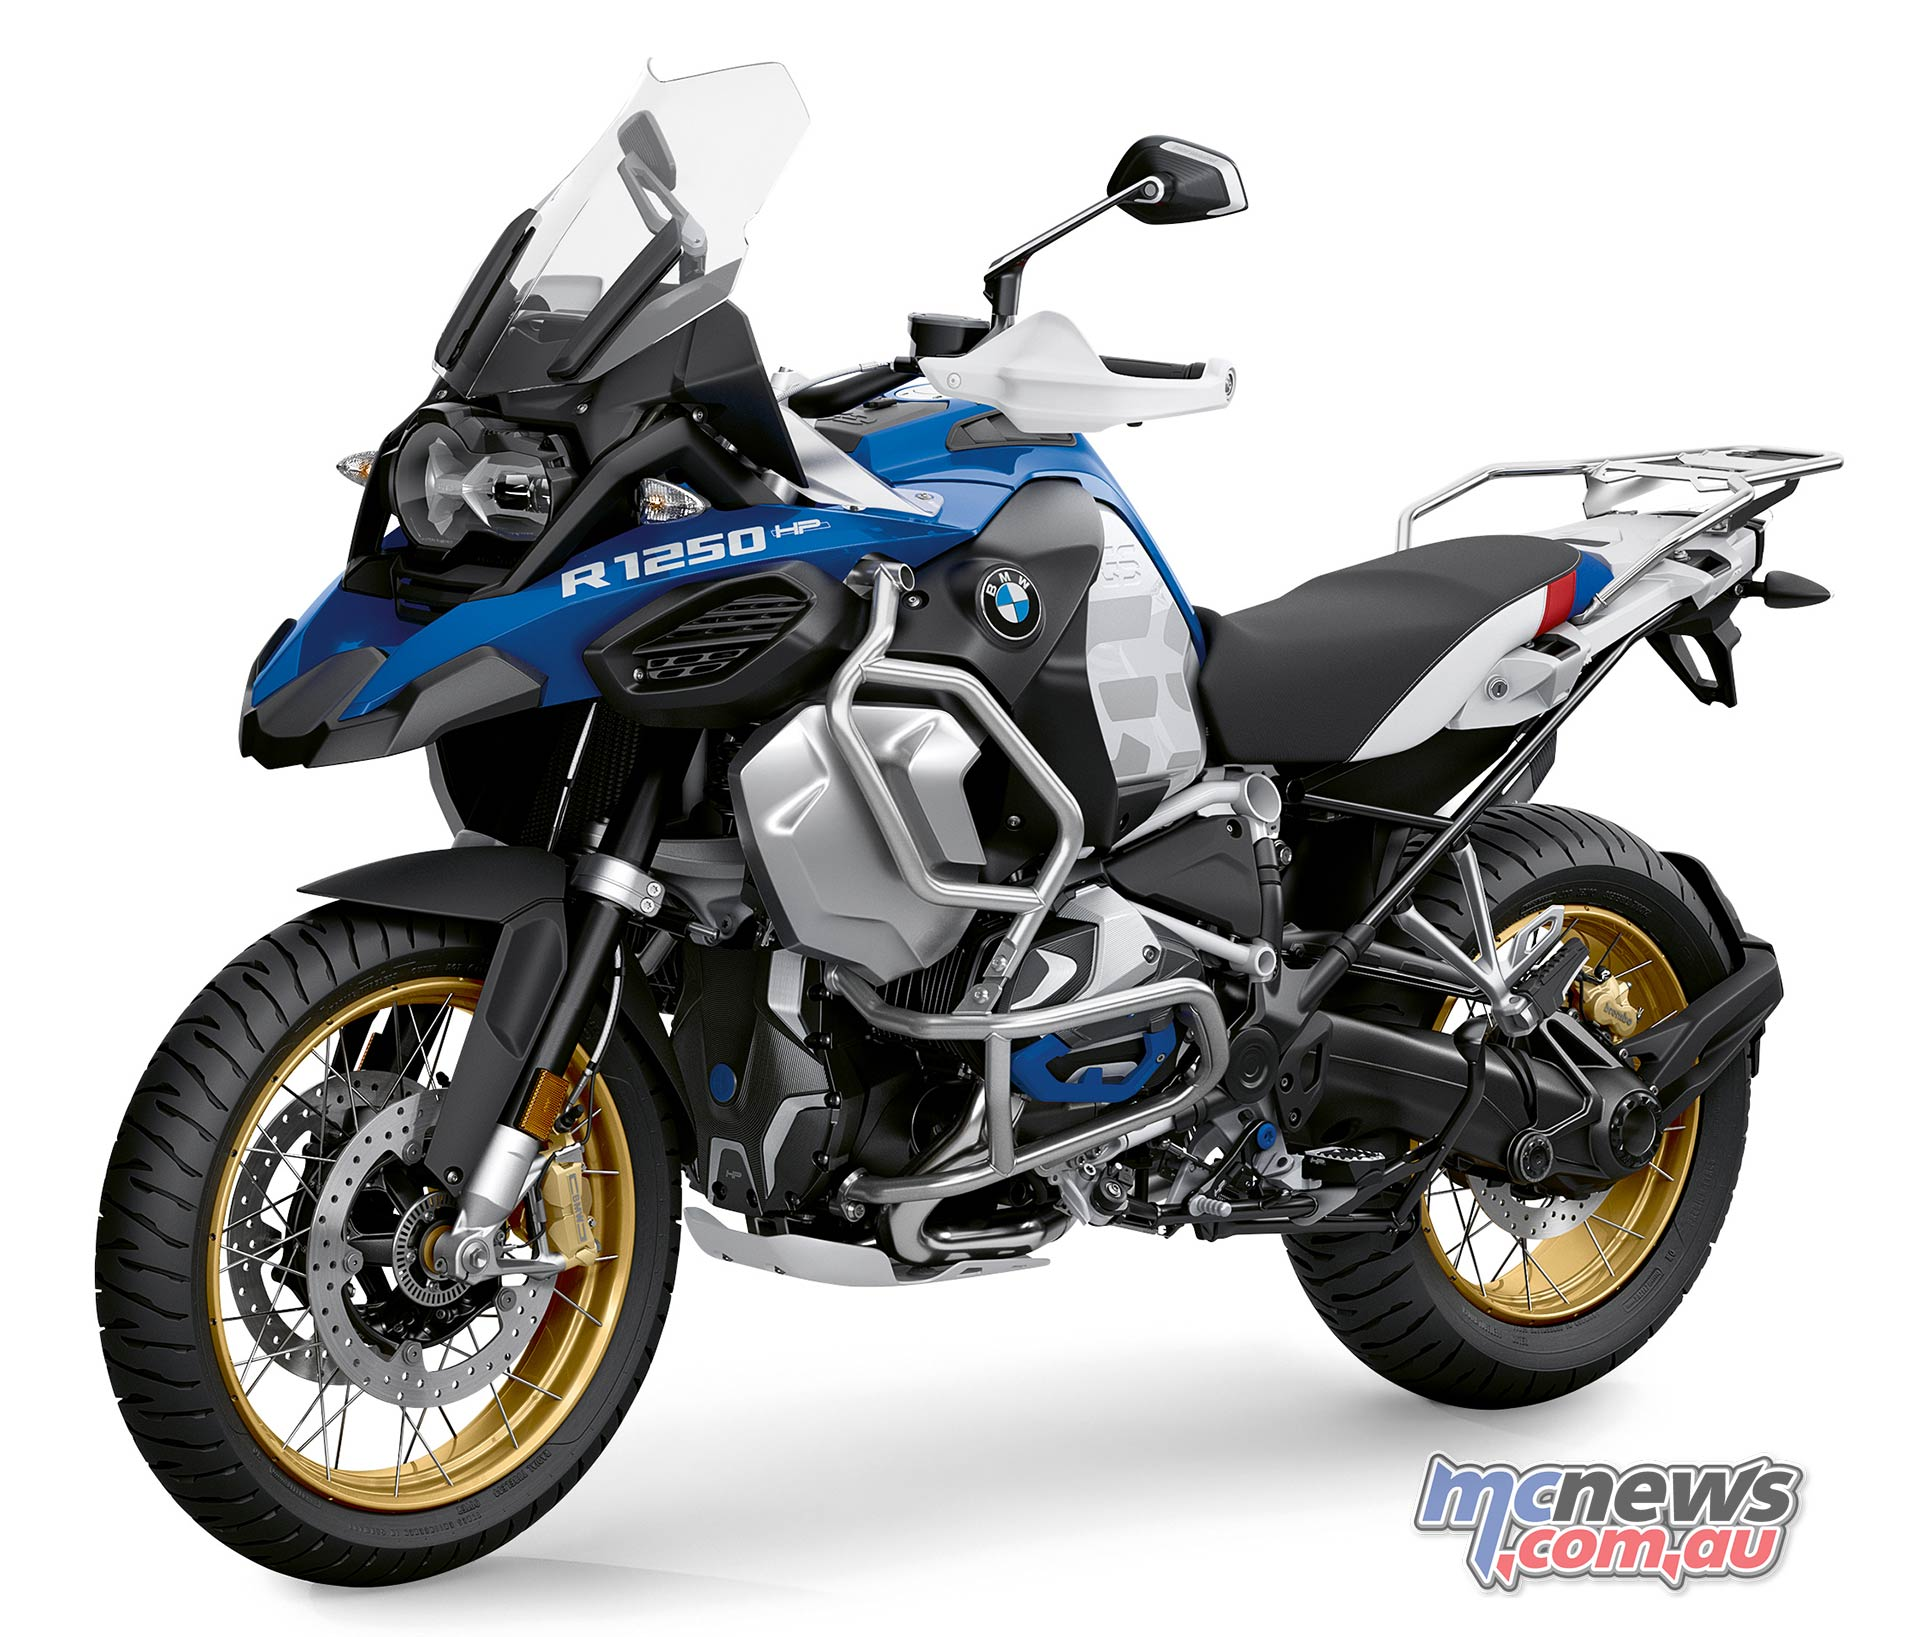 2019: 2019 BMW R 1250 GS Adventure